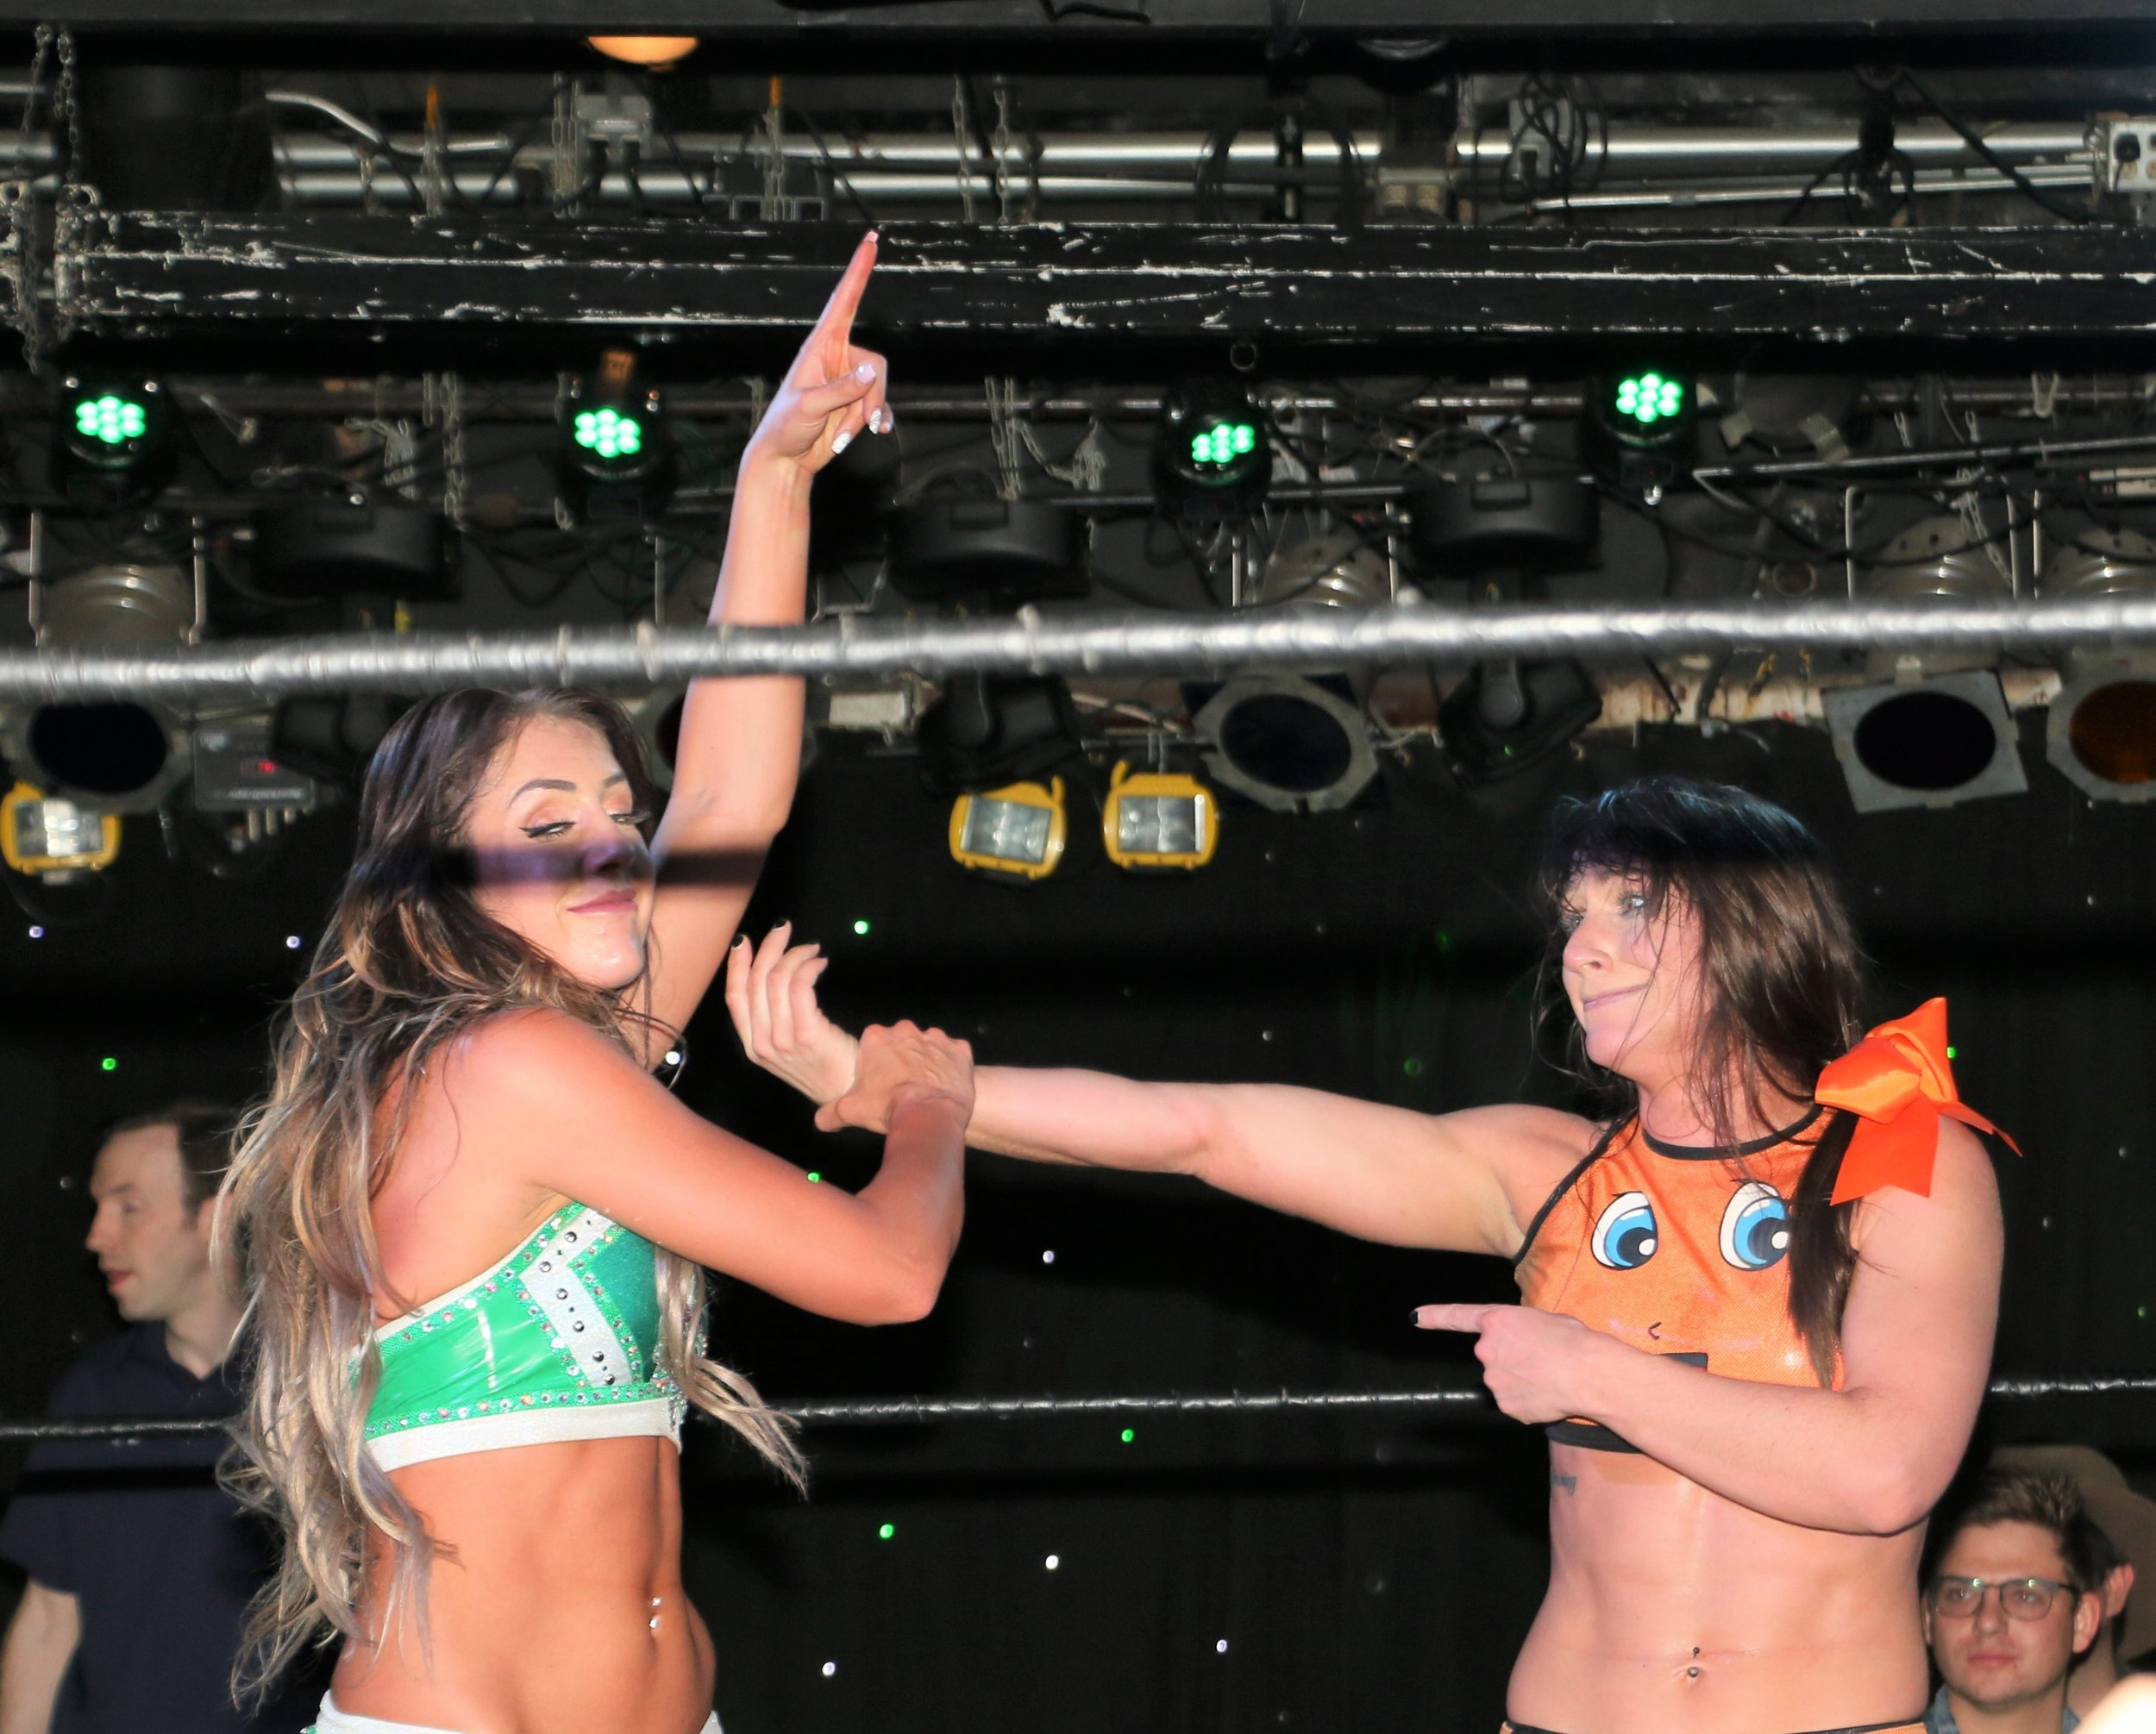 An emotional Kylie Rae, right, congratulates Britt Baker on her victory in the Zelo Pro Women's Championship match.